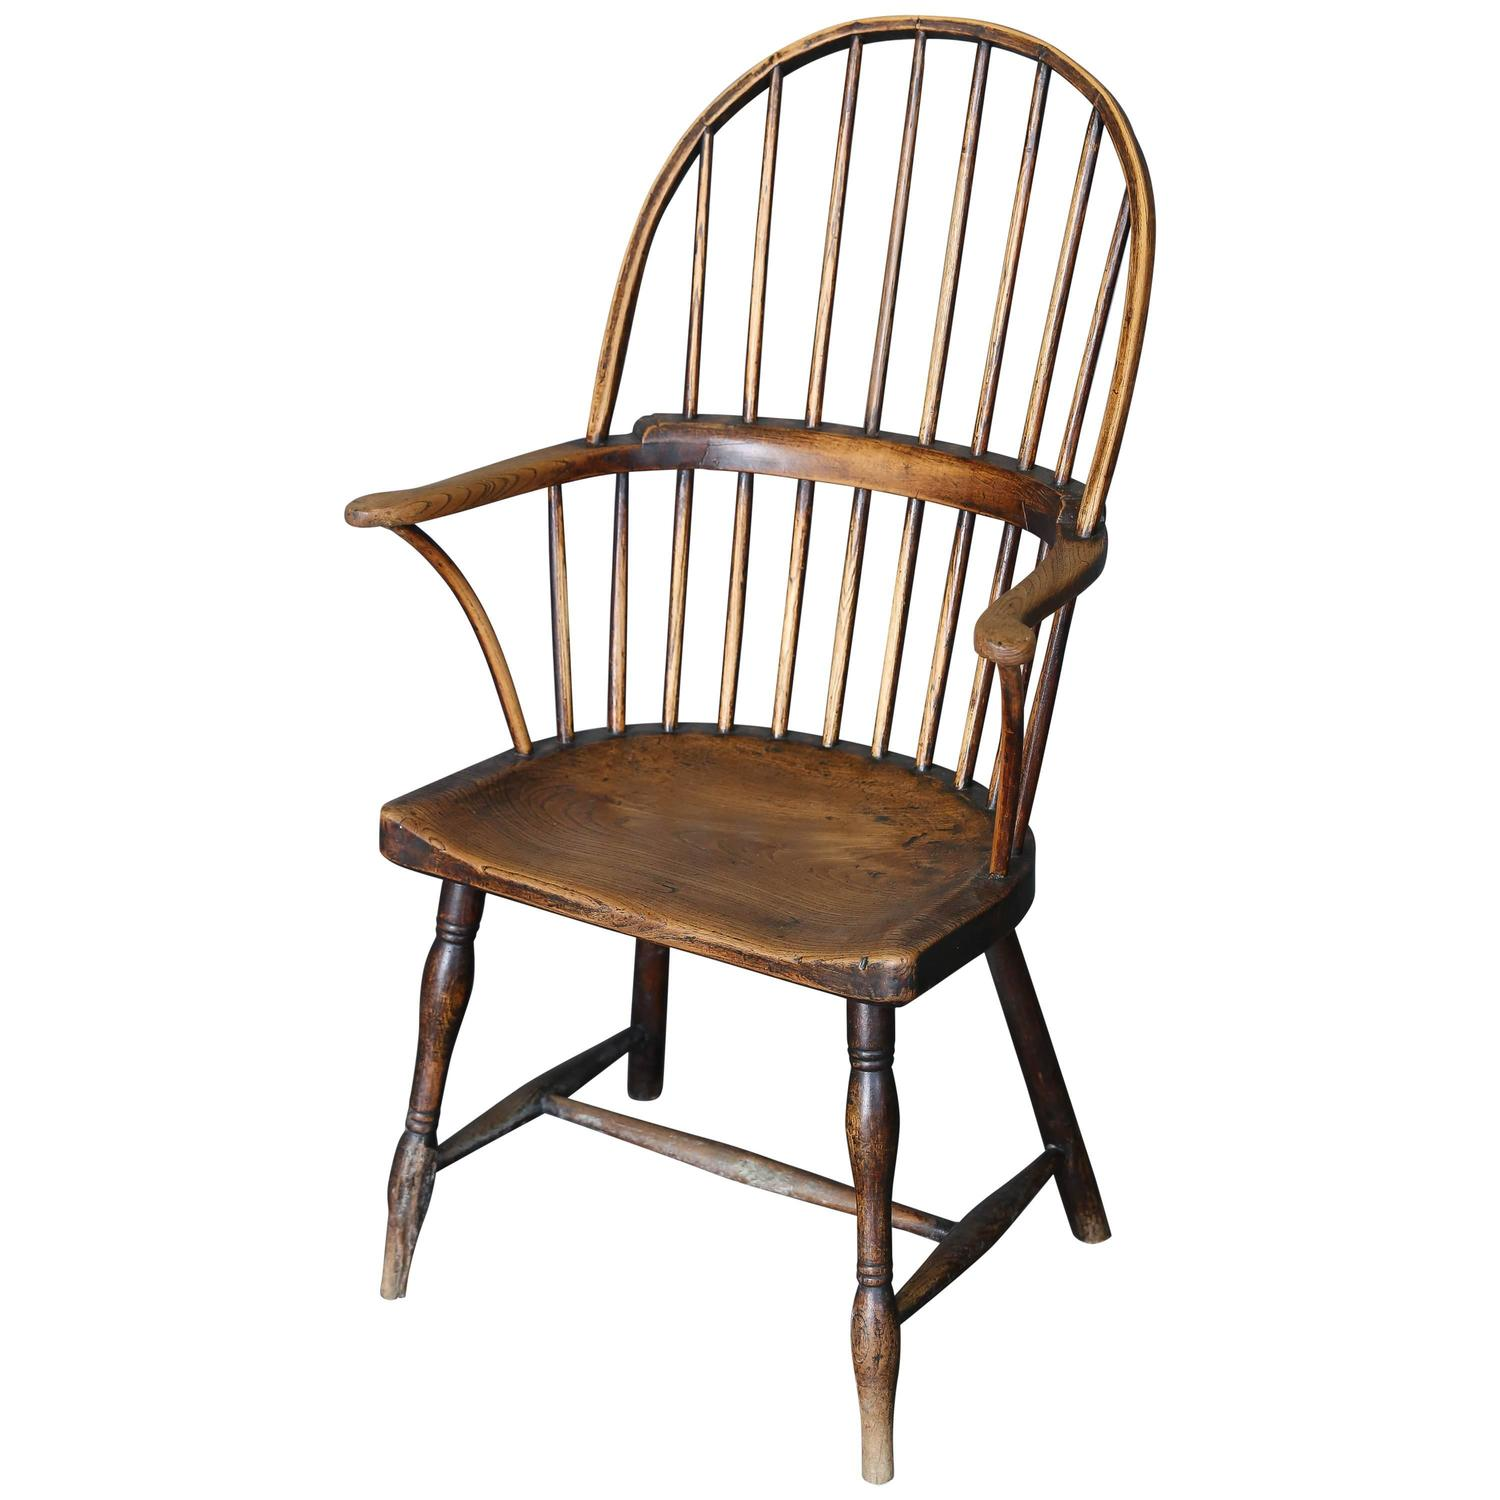 Antique 18th Century Ash and Elm Windsor Chair - England Windsor Chairs - 68 For Sale At 1stdibs